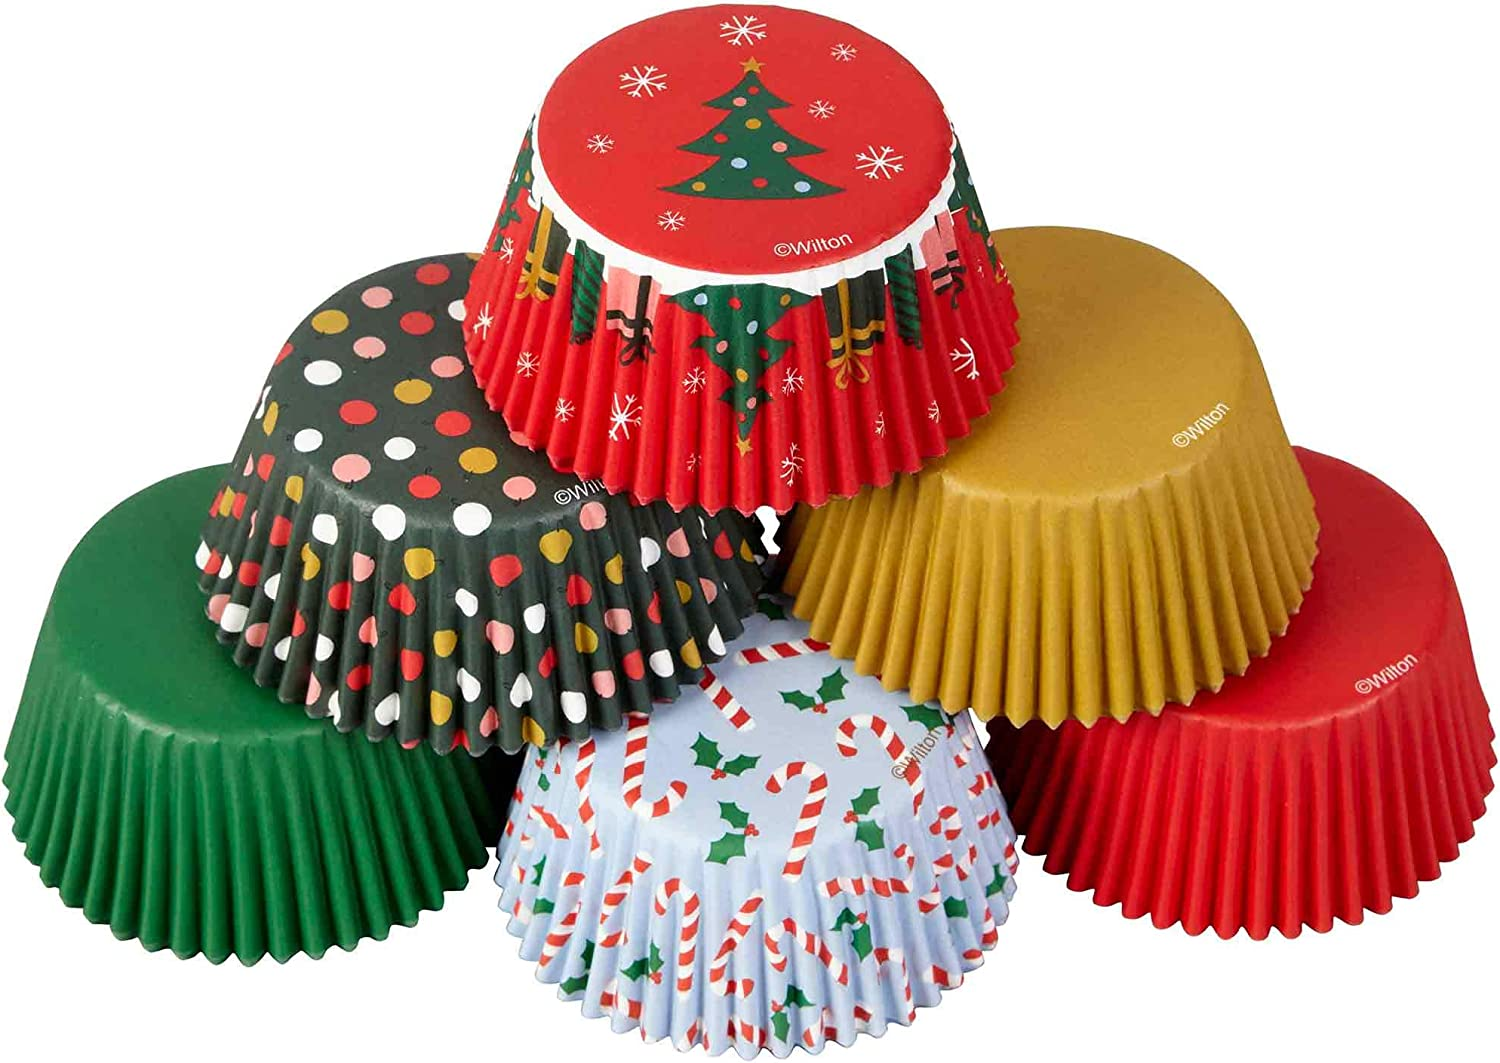 Standard Baking Cups-Christmas Traditional